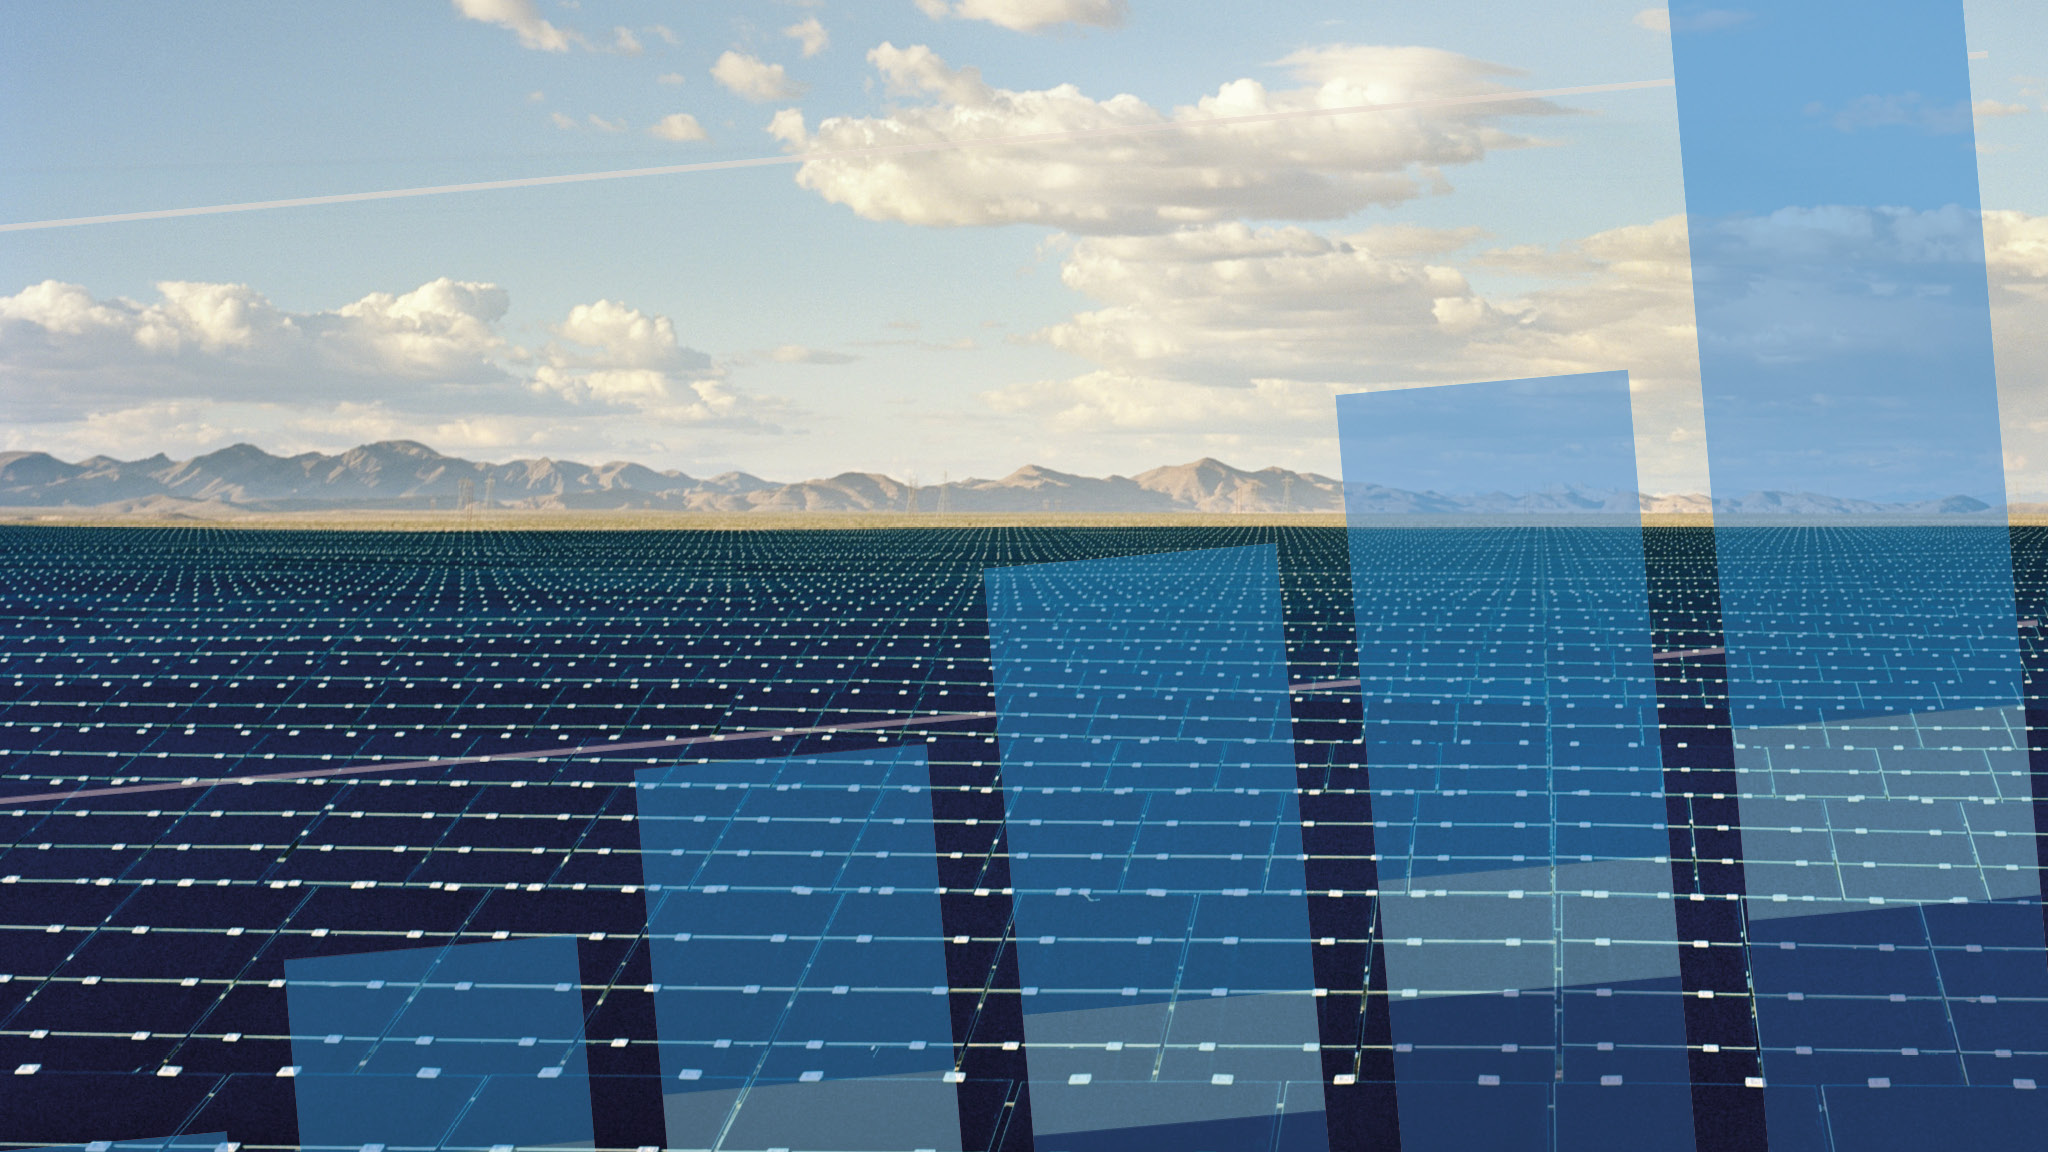 Clouds drift over US solar industry